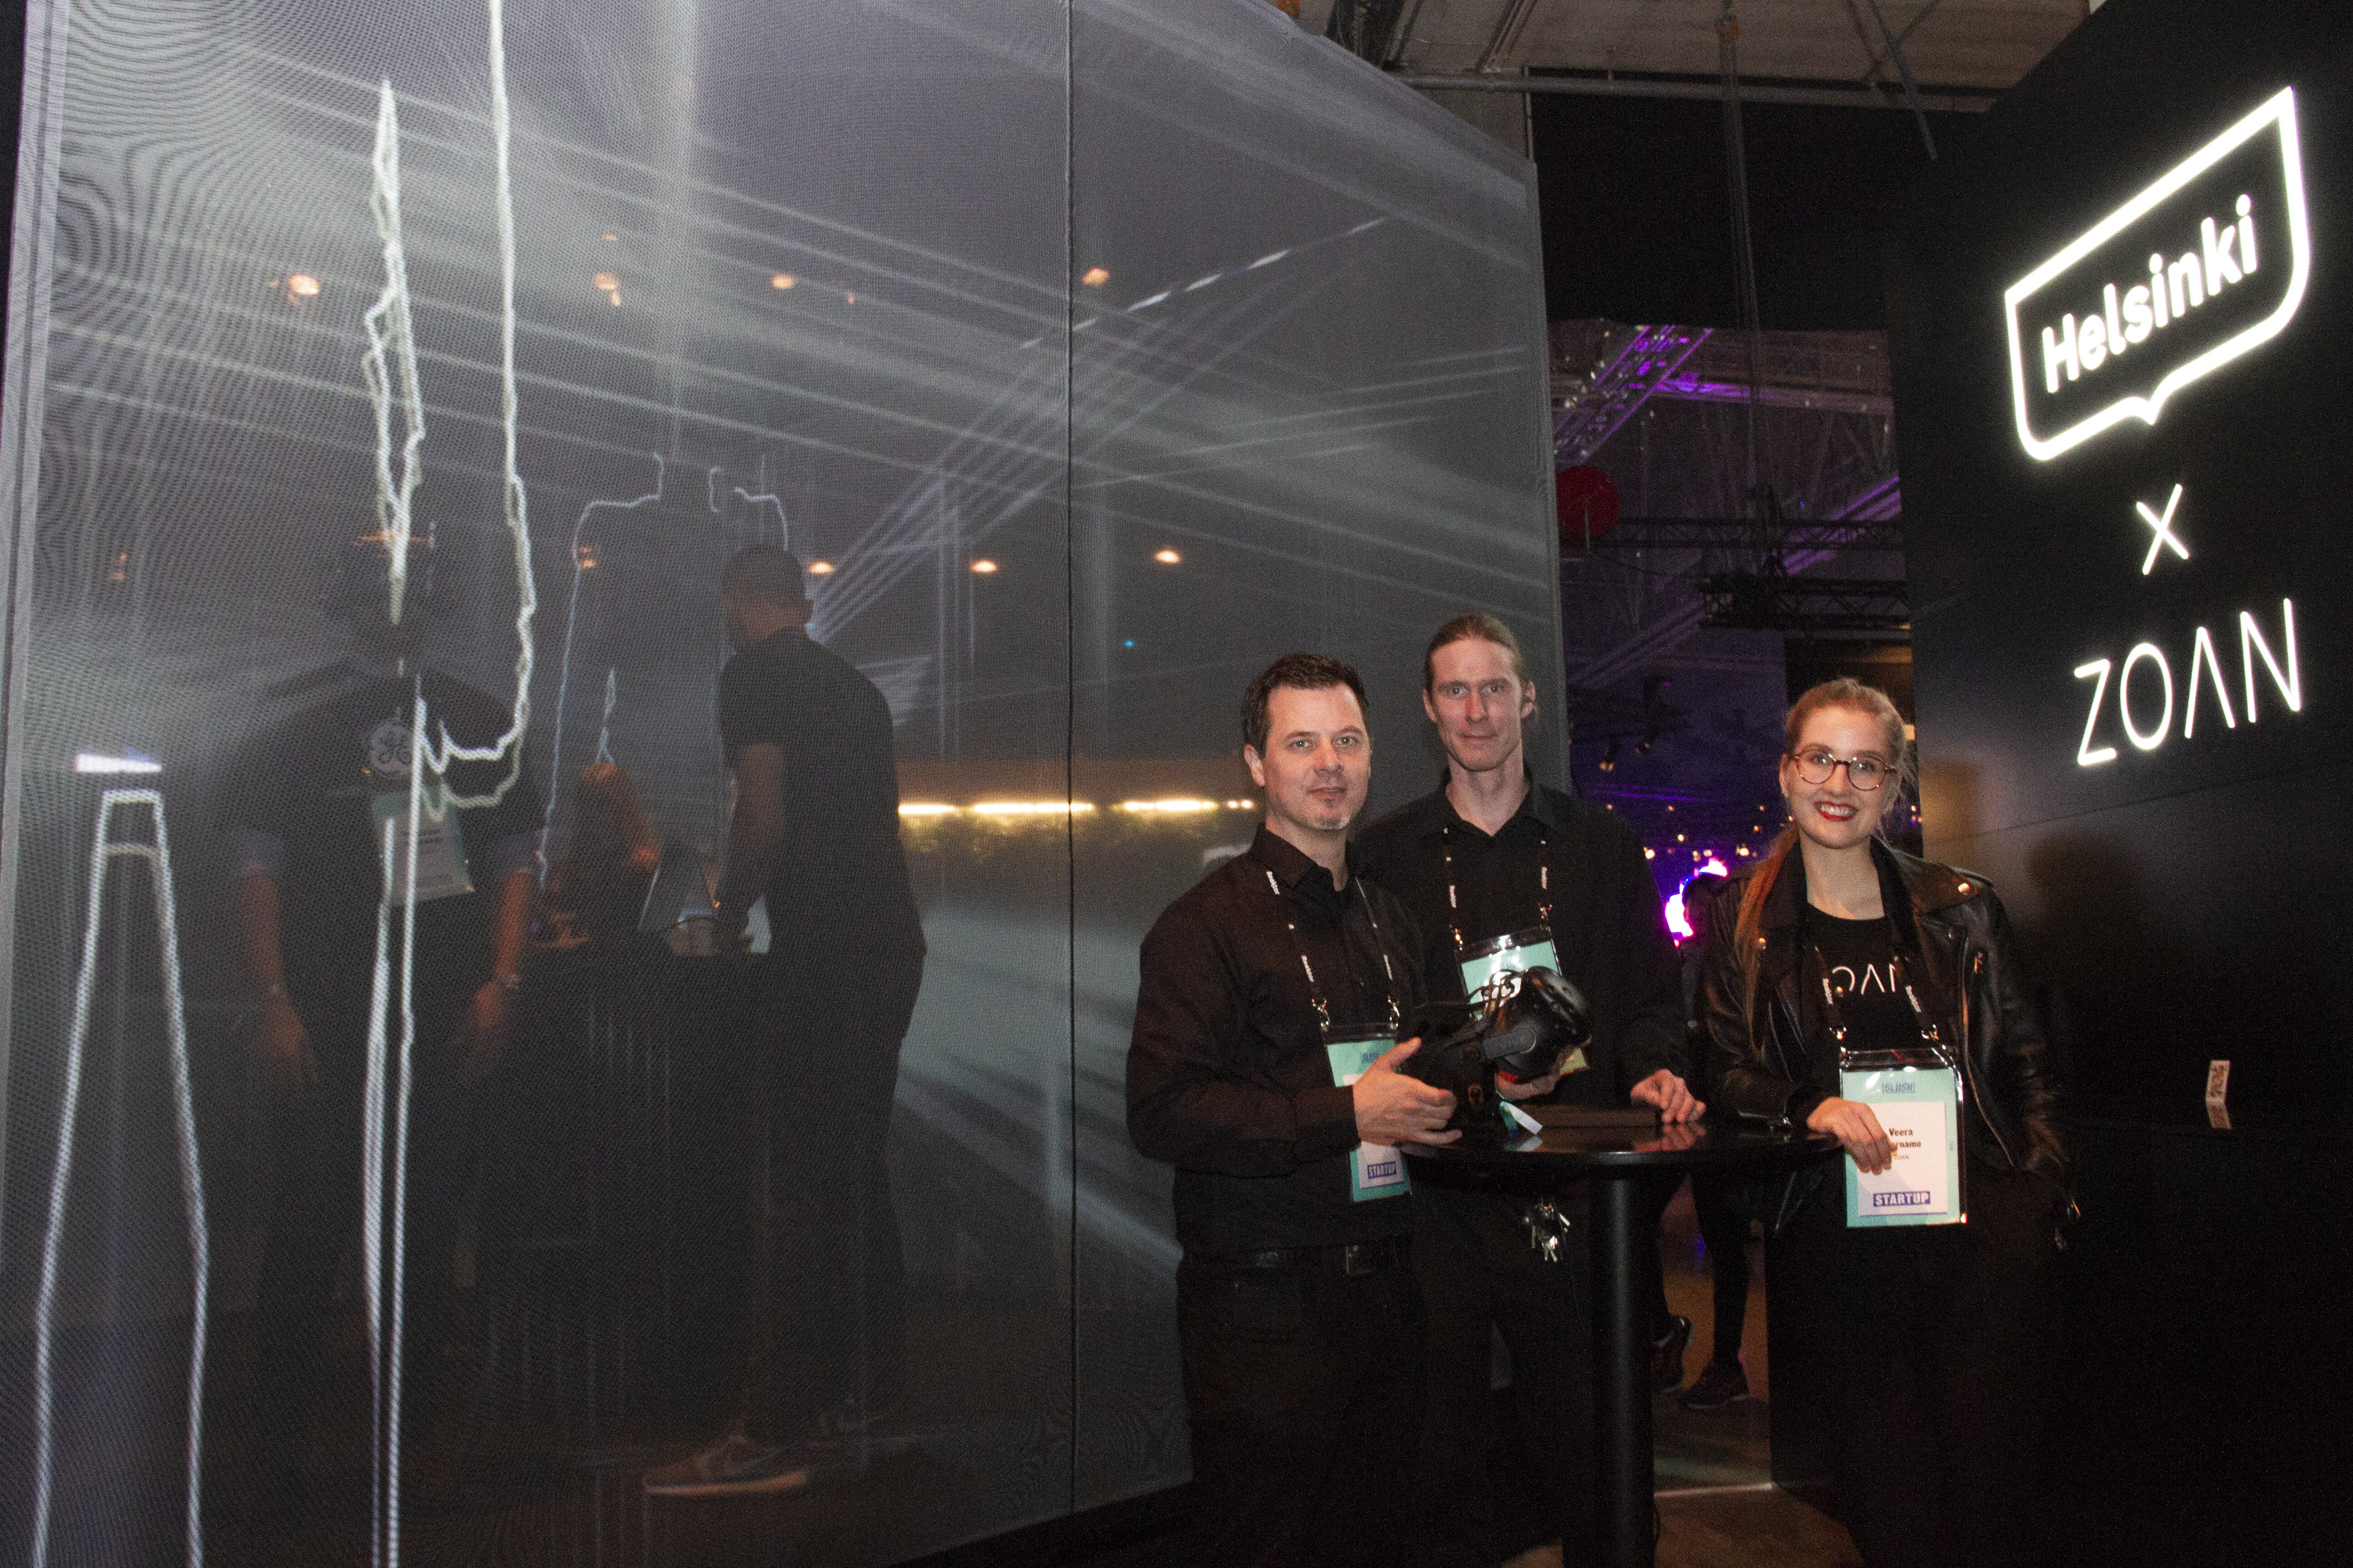 """The Zoan team, represented by its office manager Veera Varnamo (right), Janne Itäpiiri (left) and the designer Aki Hirvilammi (middle), demonstrated a virtual reality cube that gave Slush visitors an opportunity to travel to multiple places all over the Finnish capital area, such as Senate Square, the home of Alvar Aalto and Lonna island. """"What I like about the virtual reality is how easy it puts smiles on people´s faces once they put on the glasses,"""" Veera said."""